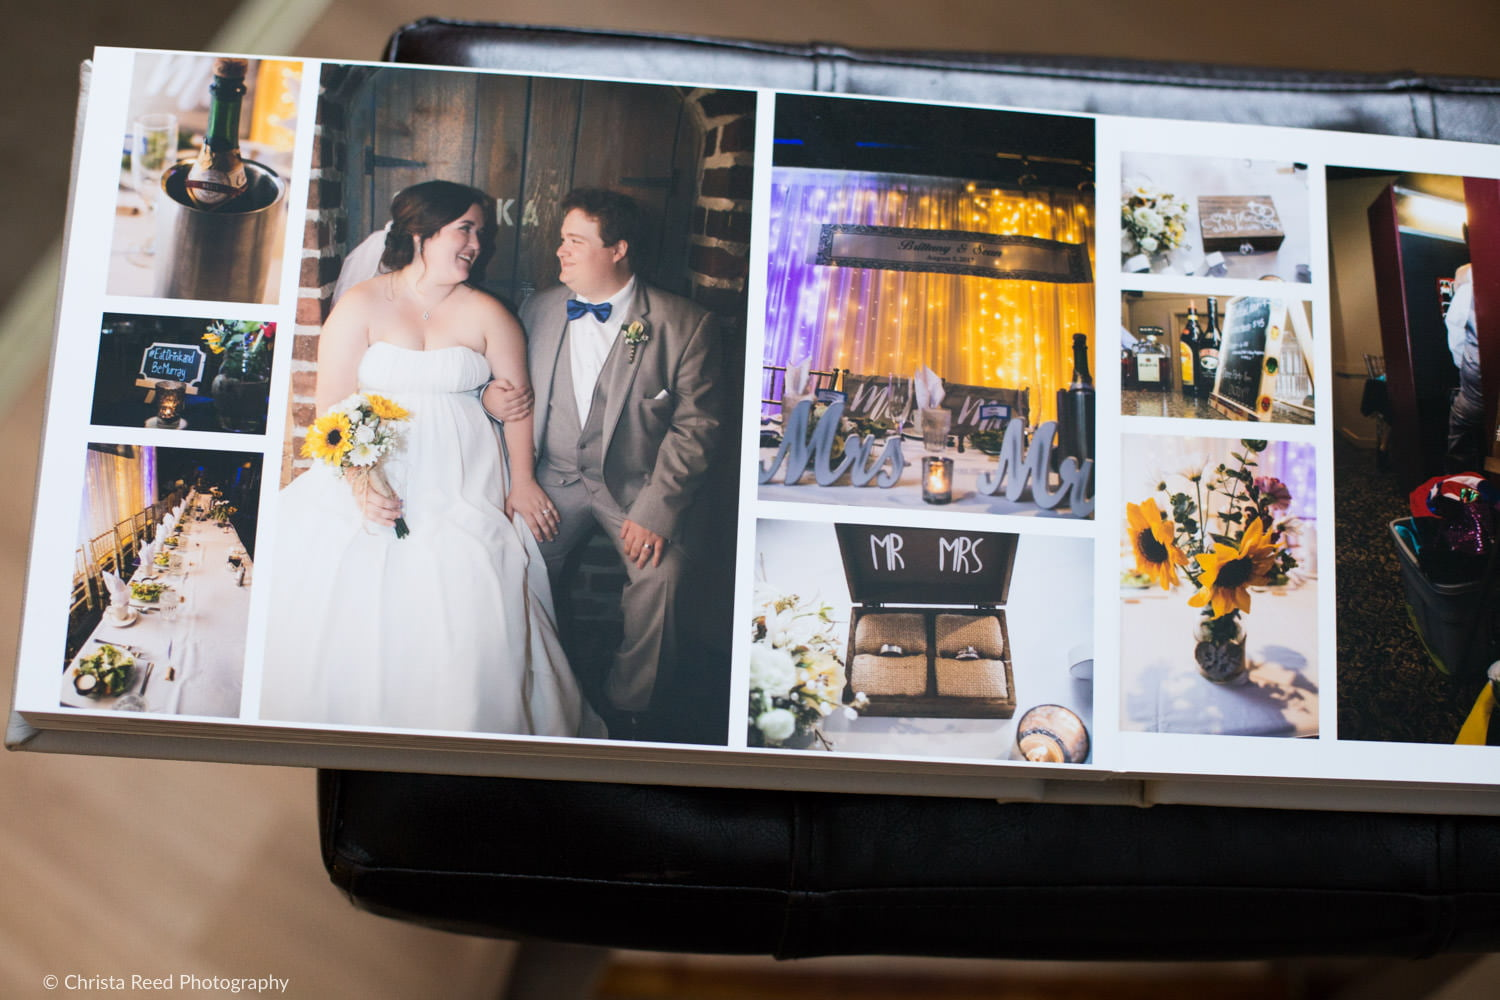 wedding reception at the chanhassen dinner theatre in a wedding album by Minnesota photographer